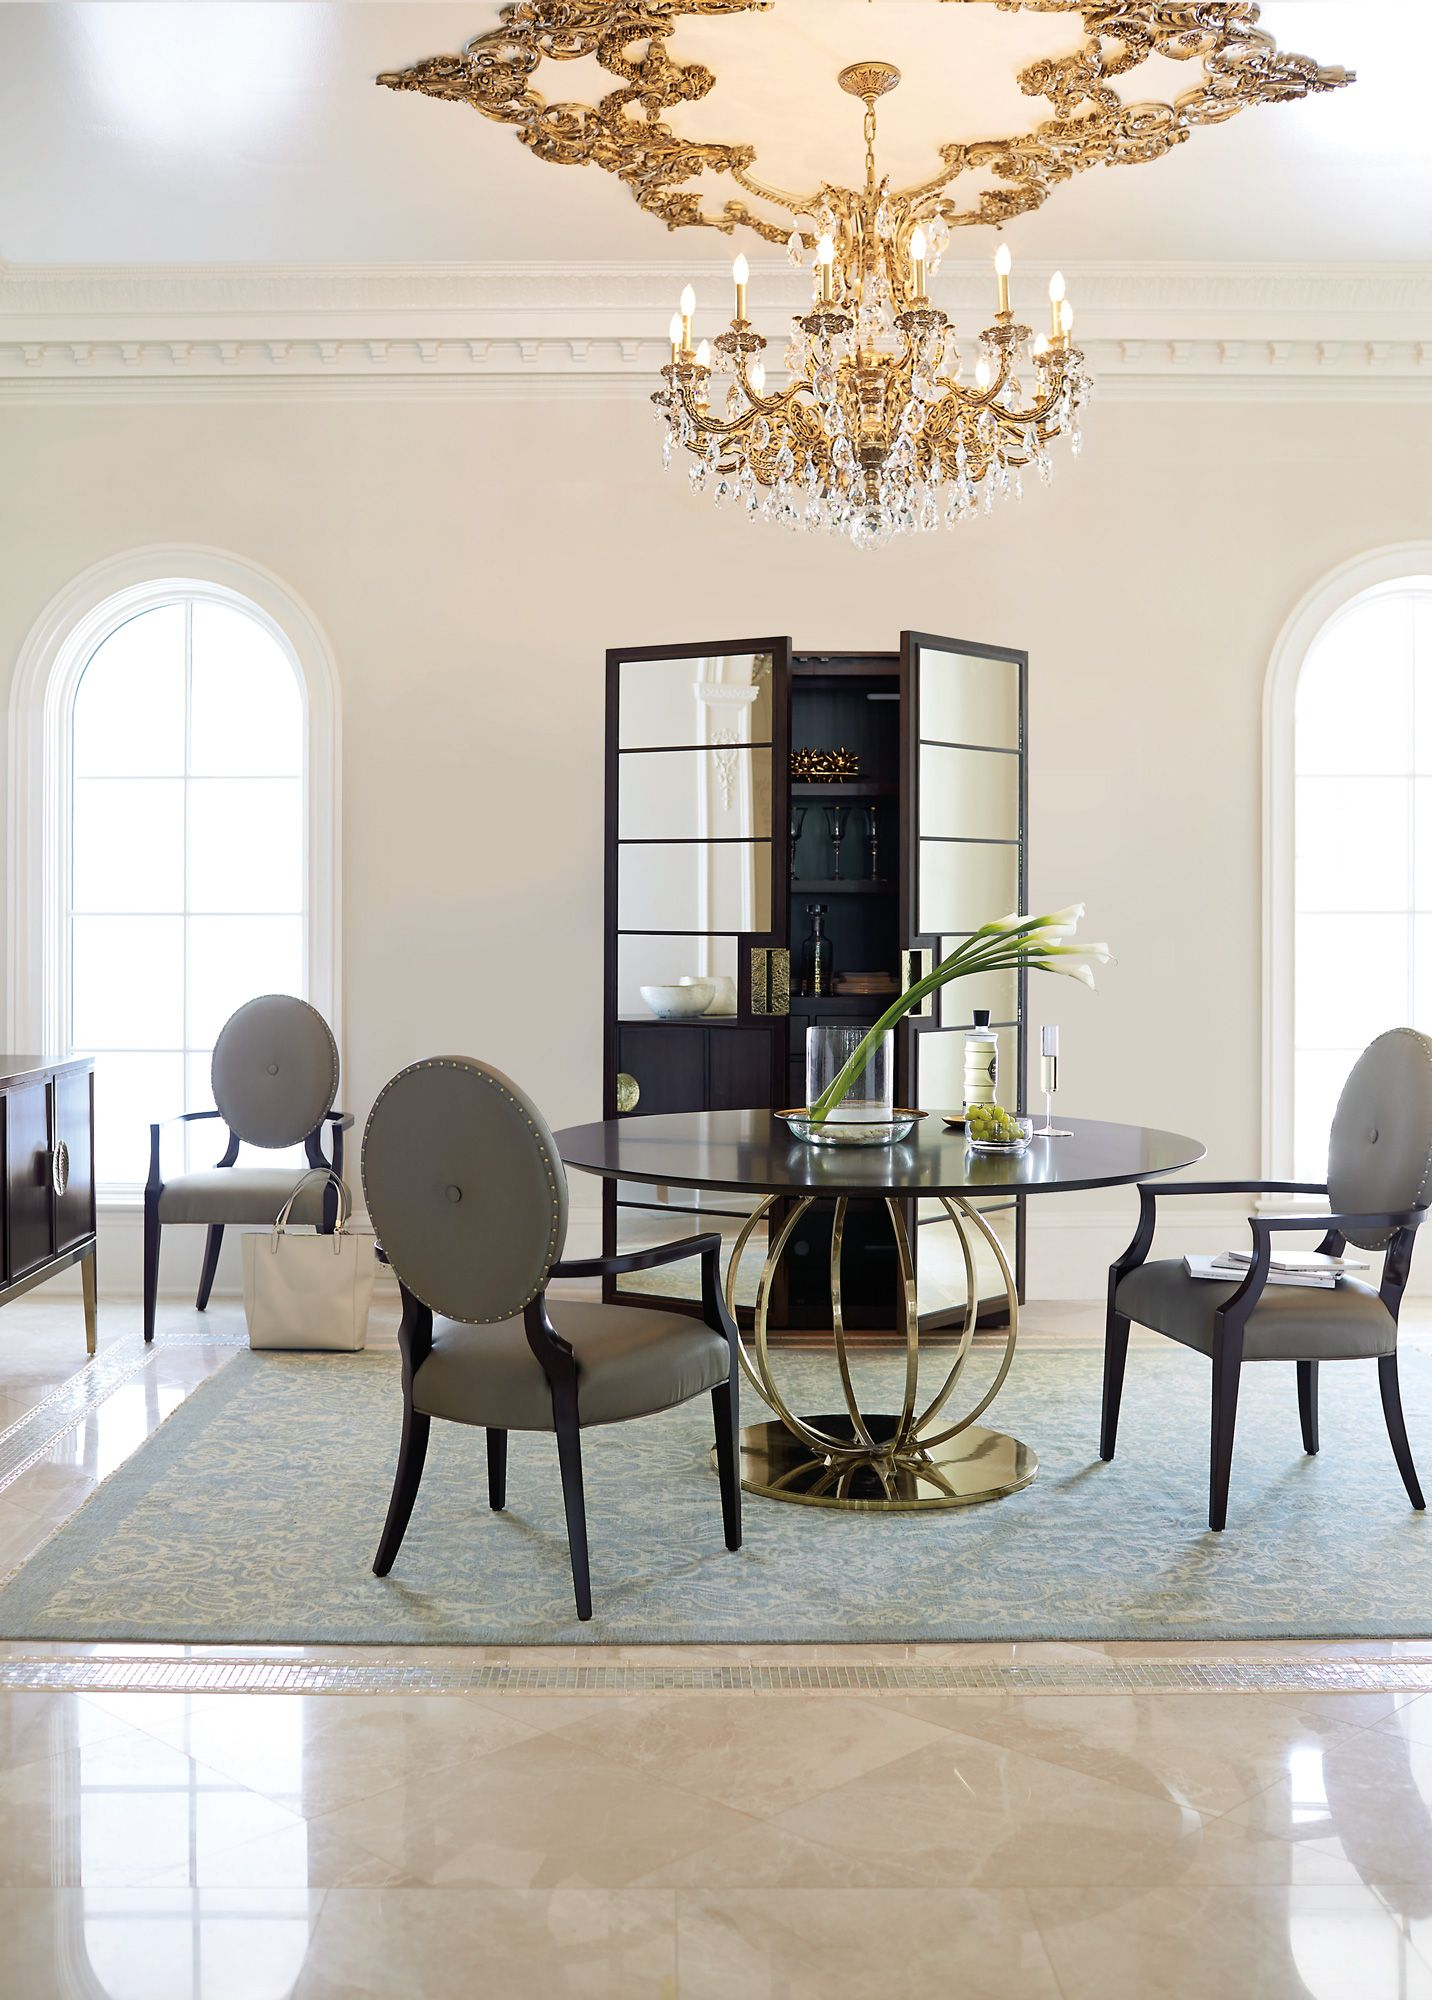 We Love This Dramatic But Refined Bernhardt Jet Set Round Dining Prepossessing Bernhardt Dining Room Set Design Ideas